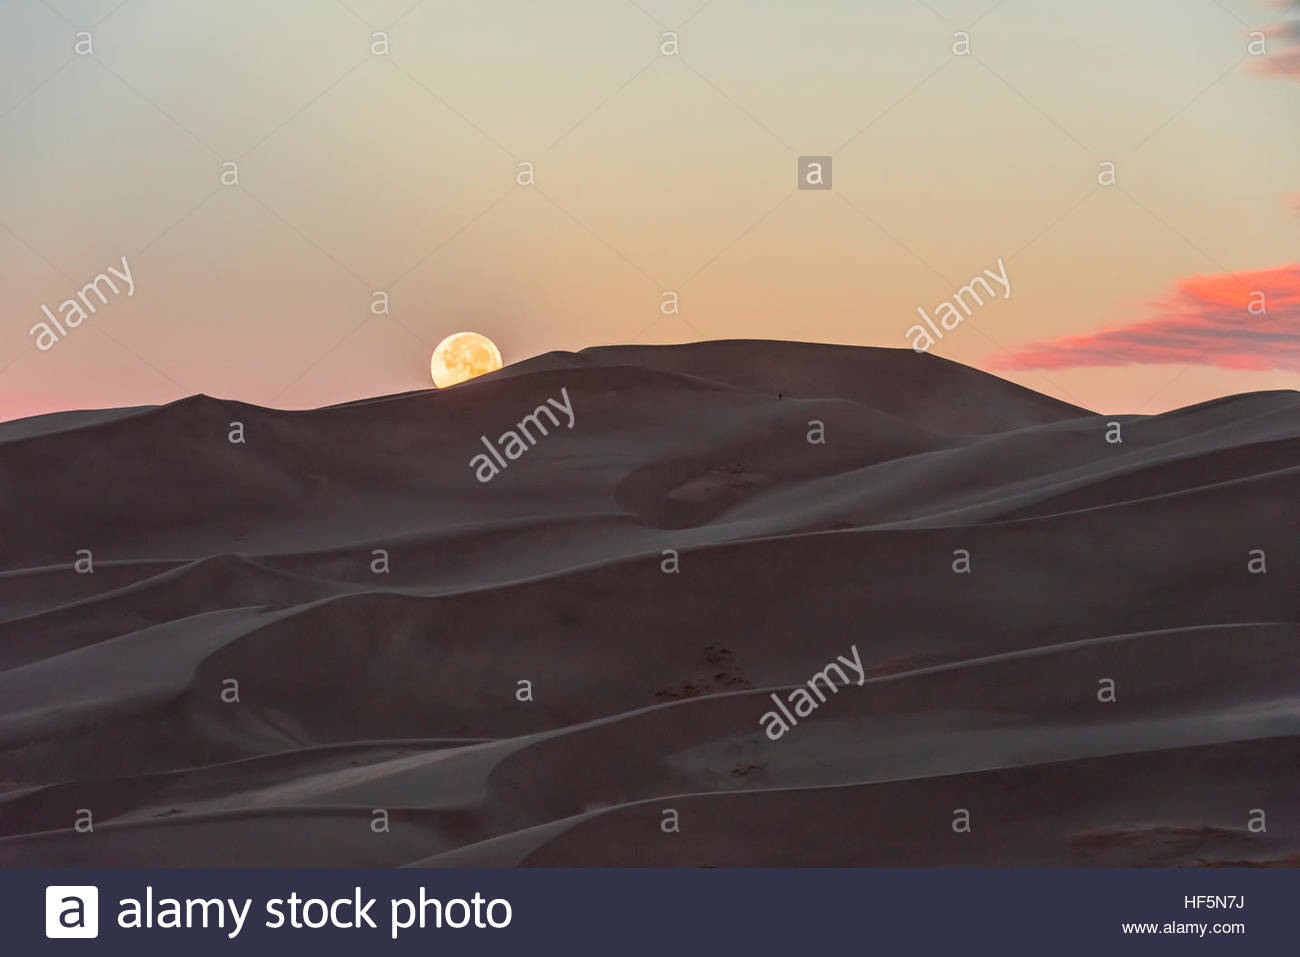 The full moon setting over the 750 foot tall sand dunes, Great Sand Dunes National Park and Preserve, near Mosca, - Stock Image